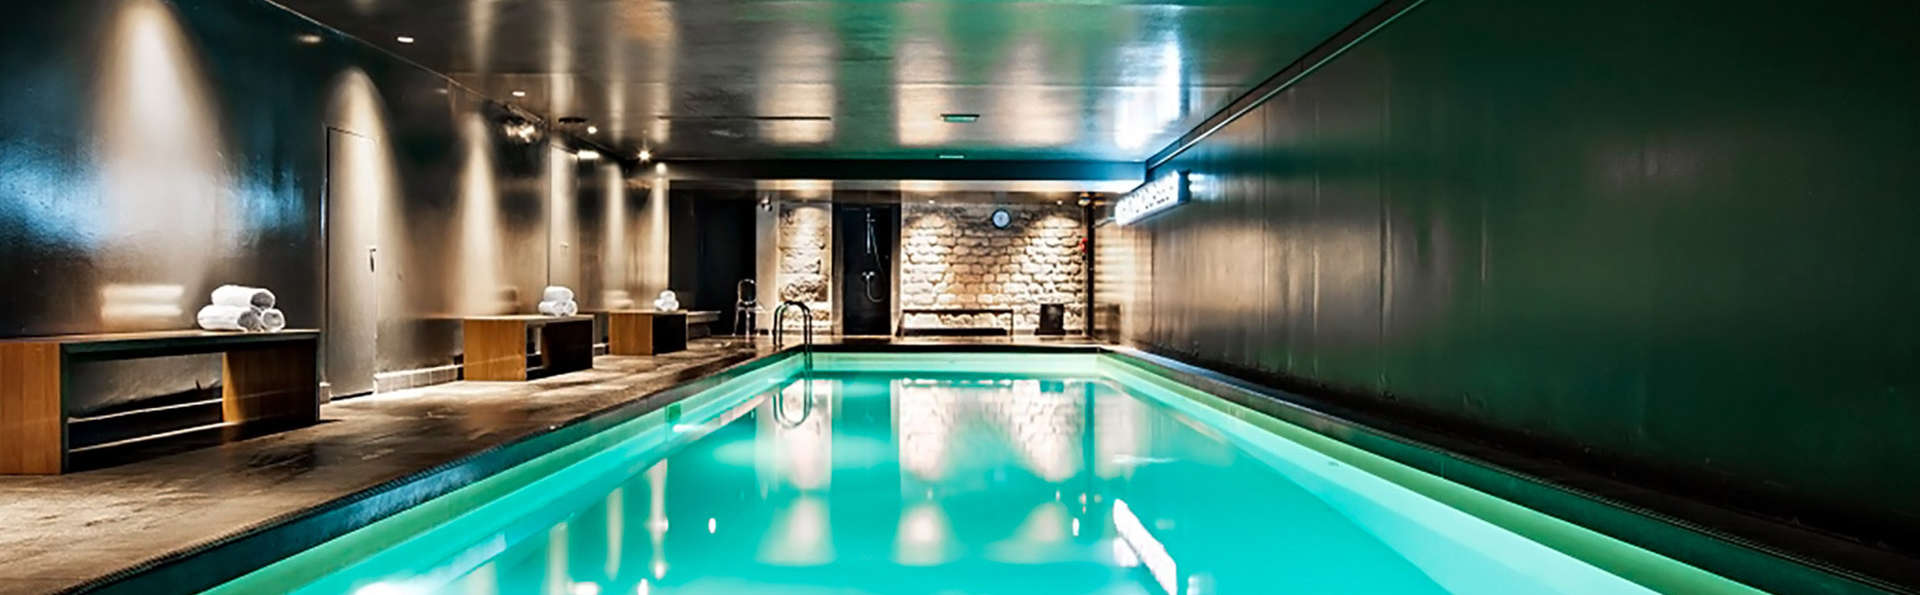 Saint James Albany Paris Hotel Spa - EDIT_NEW_POOL_01.jpg